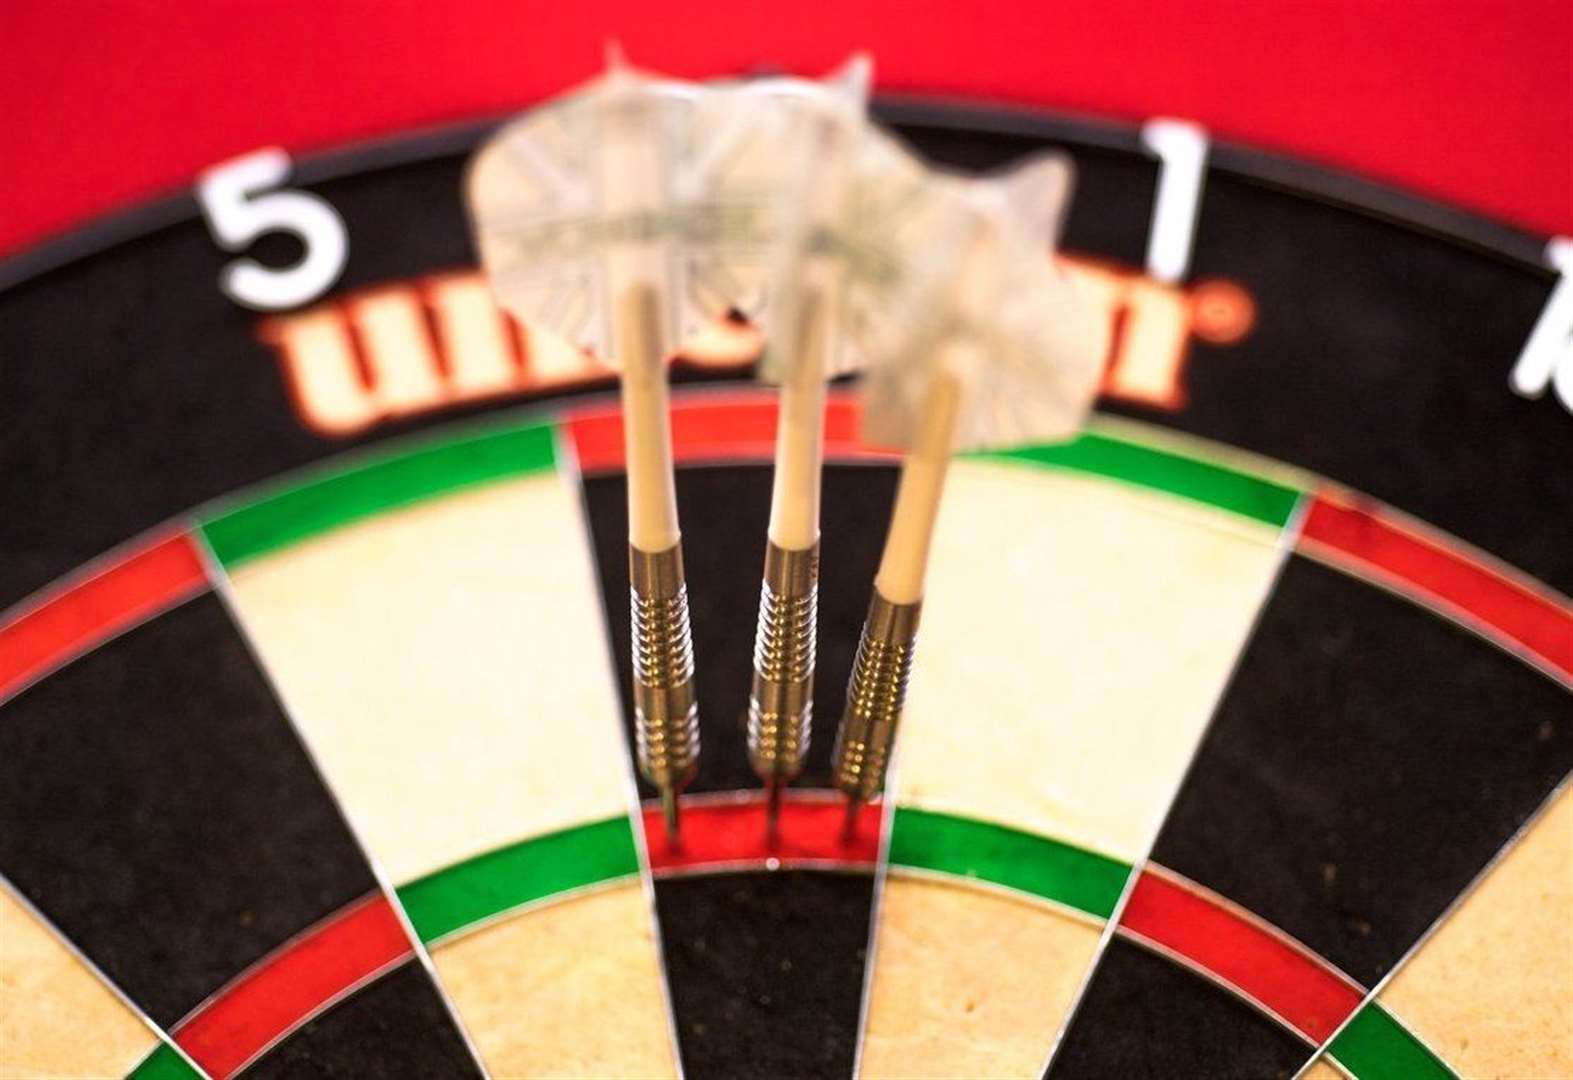 Usual suspects are on target in Inverness Darts League